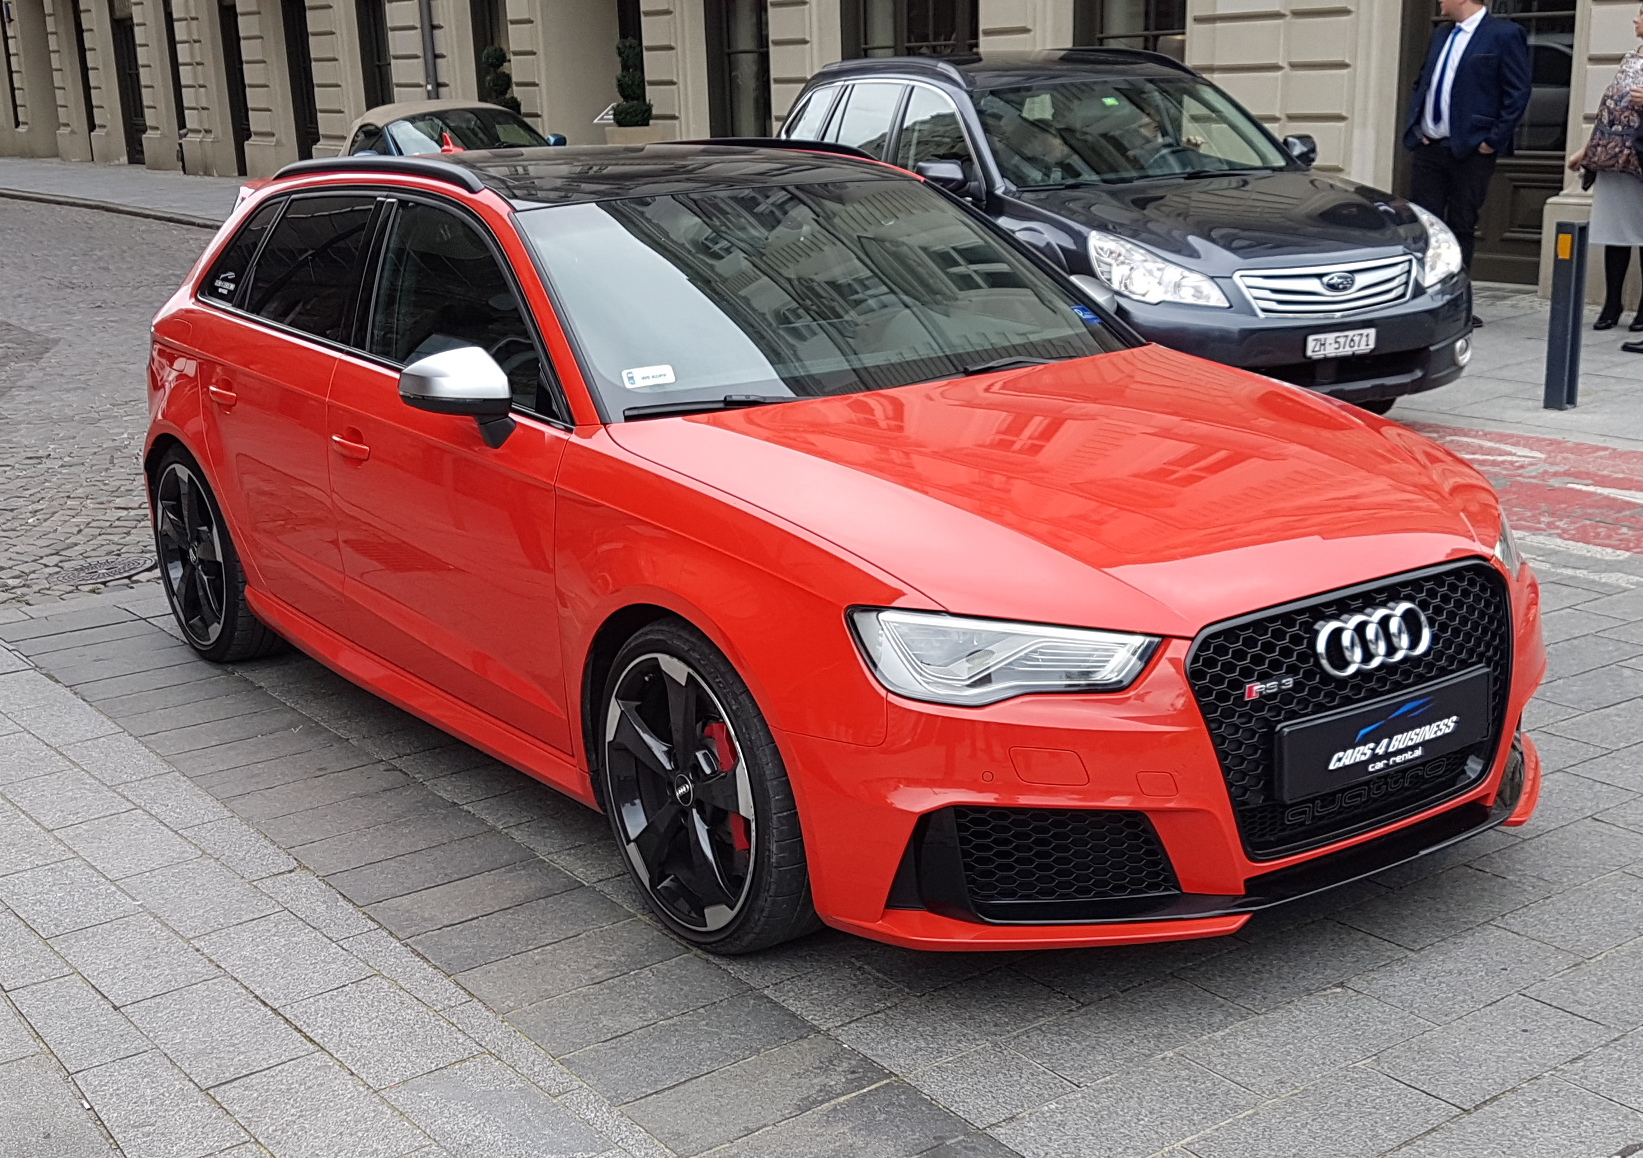 https://cars4business.pl/wp-content/uploads/2018/12/Audi-Rs3-1.jpg